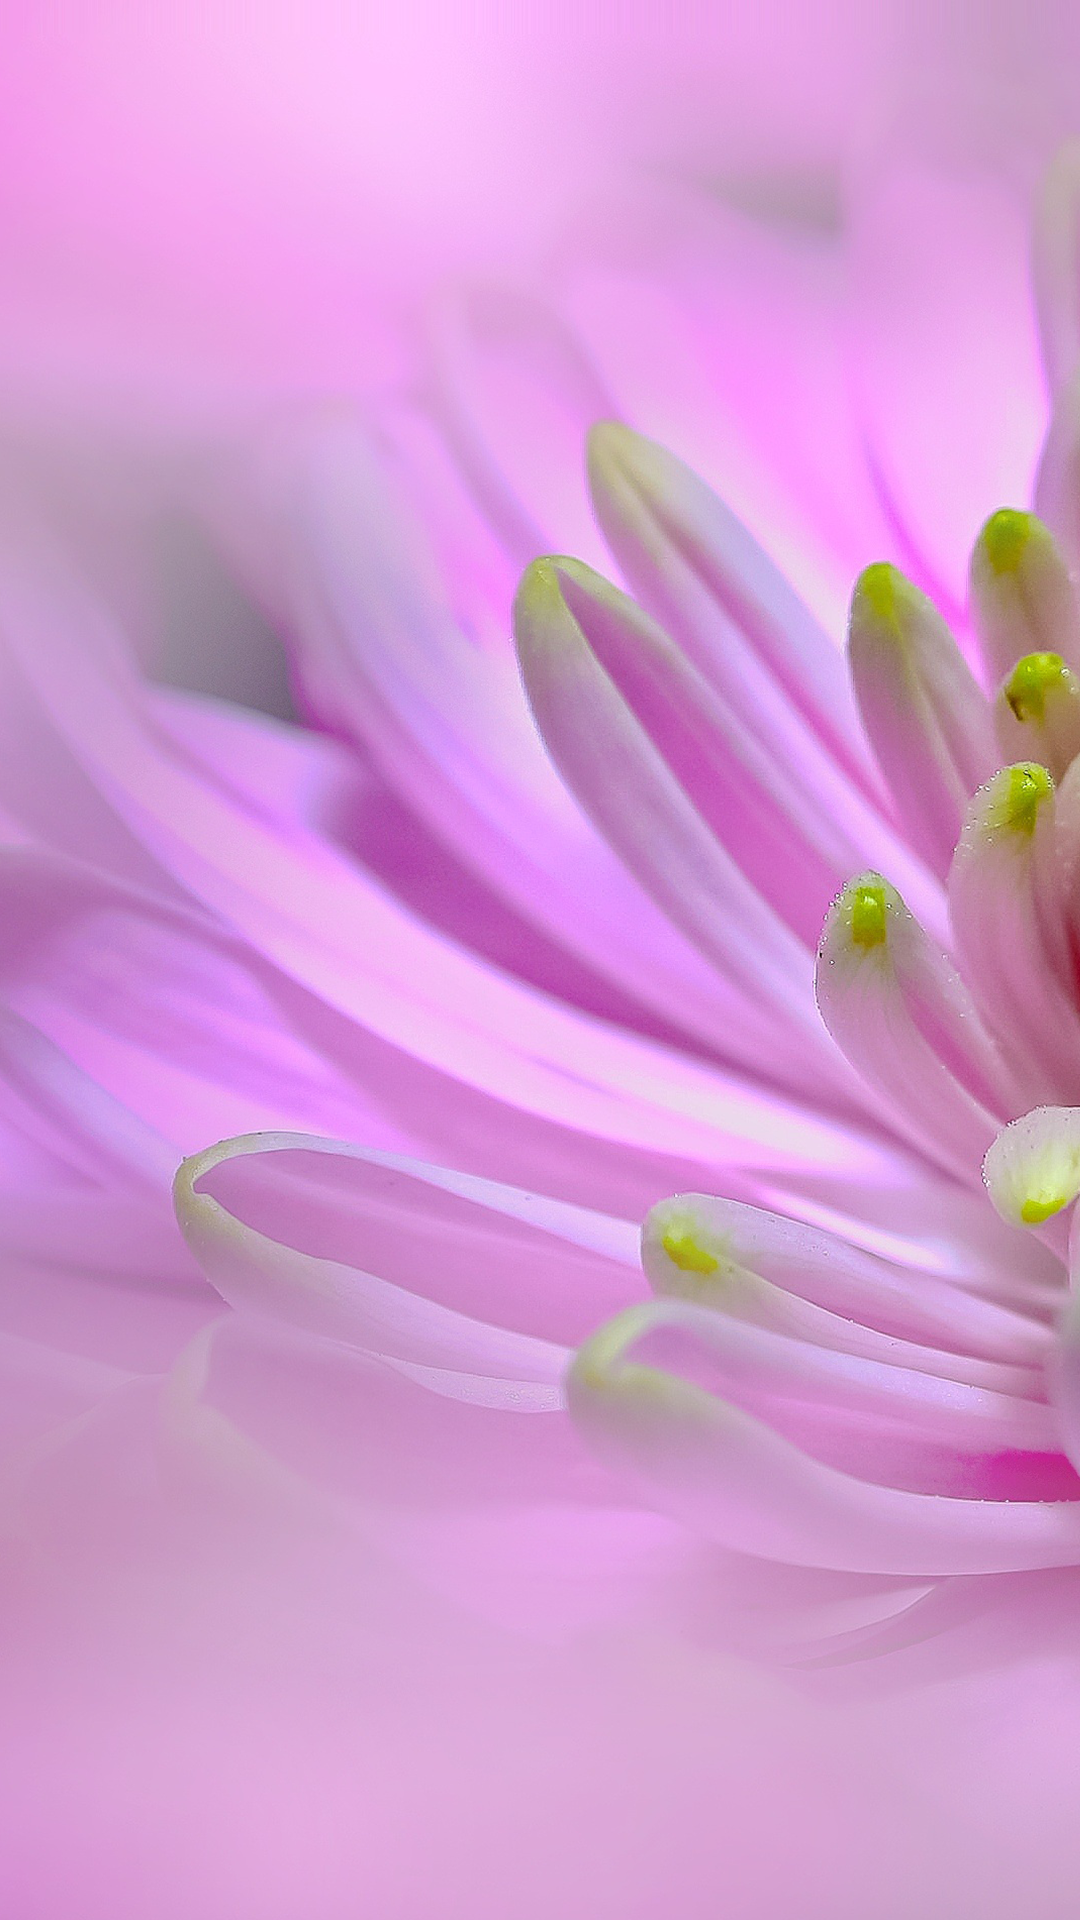 Ultra hd pink dahlia flower wallpaper for your mobile - Flower wallpaper for your phone ...